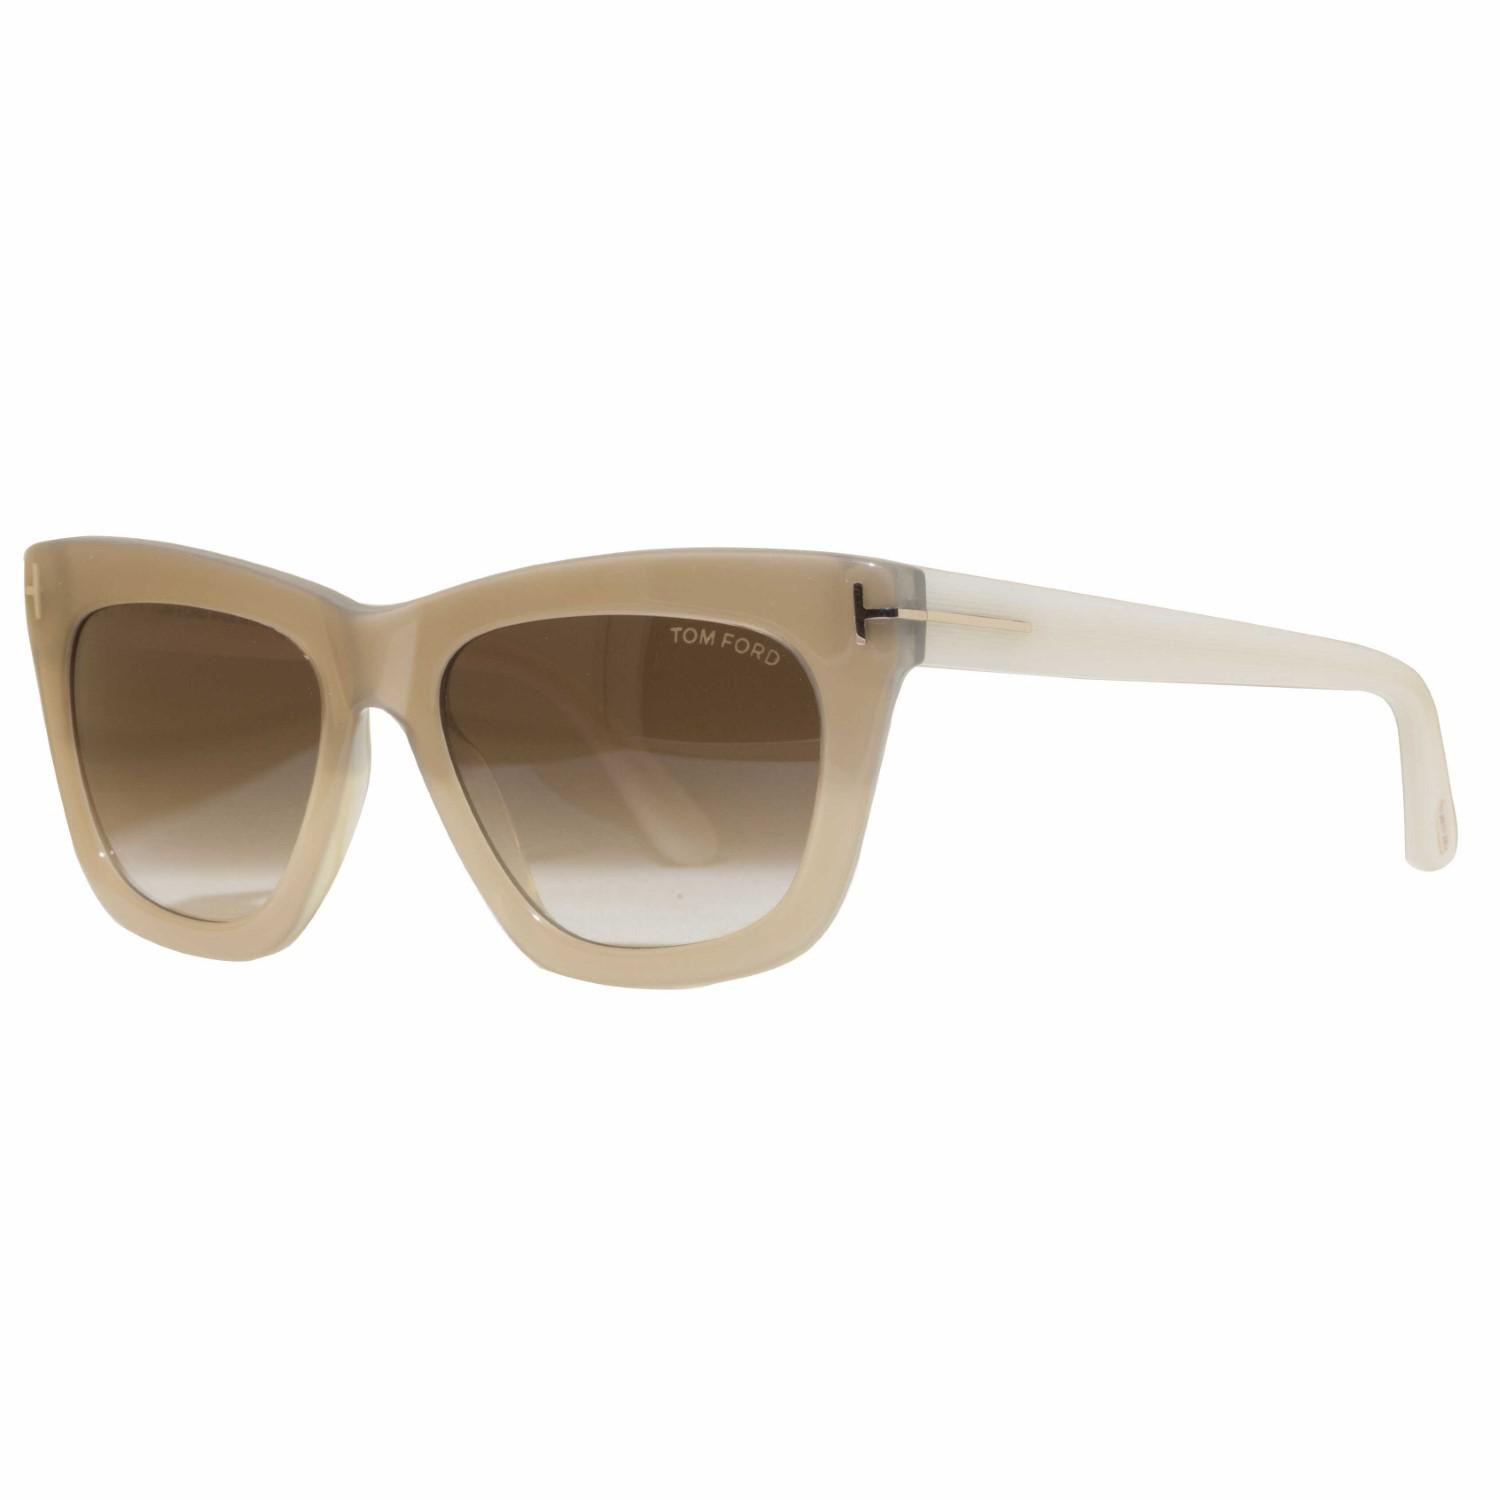 e4d37ef1f6e Lyst - Tom Ford Celina Tf361 34f Pearl ivory Brown Gradient Square ...